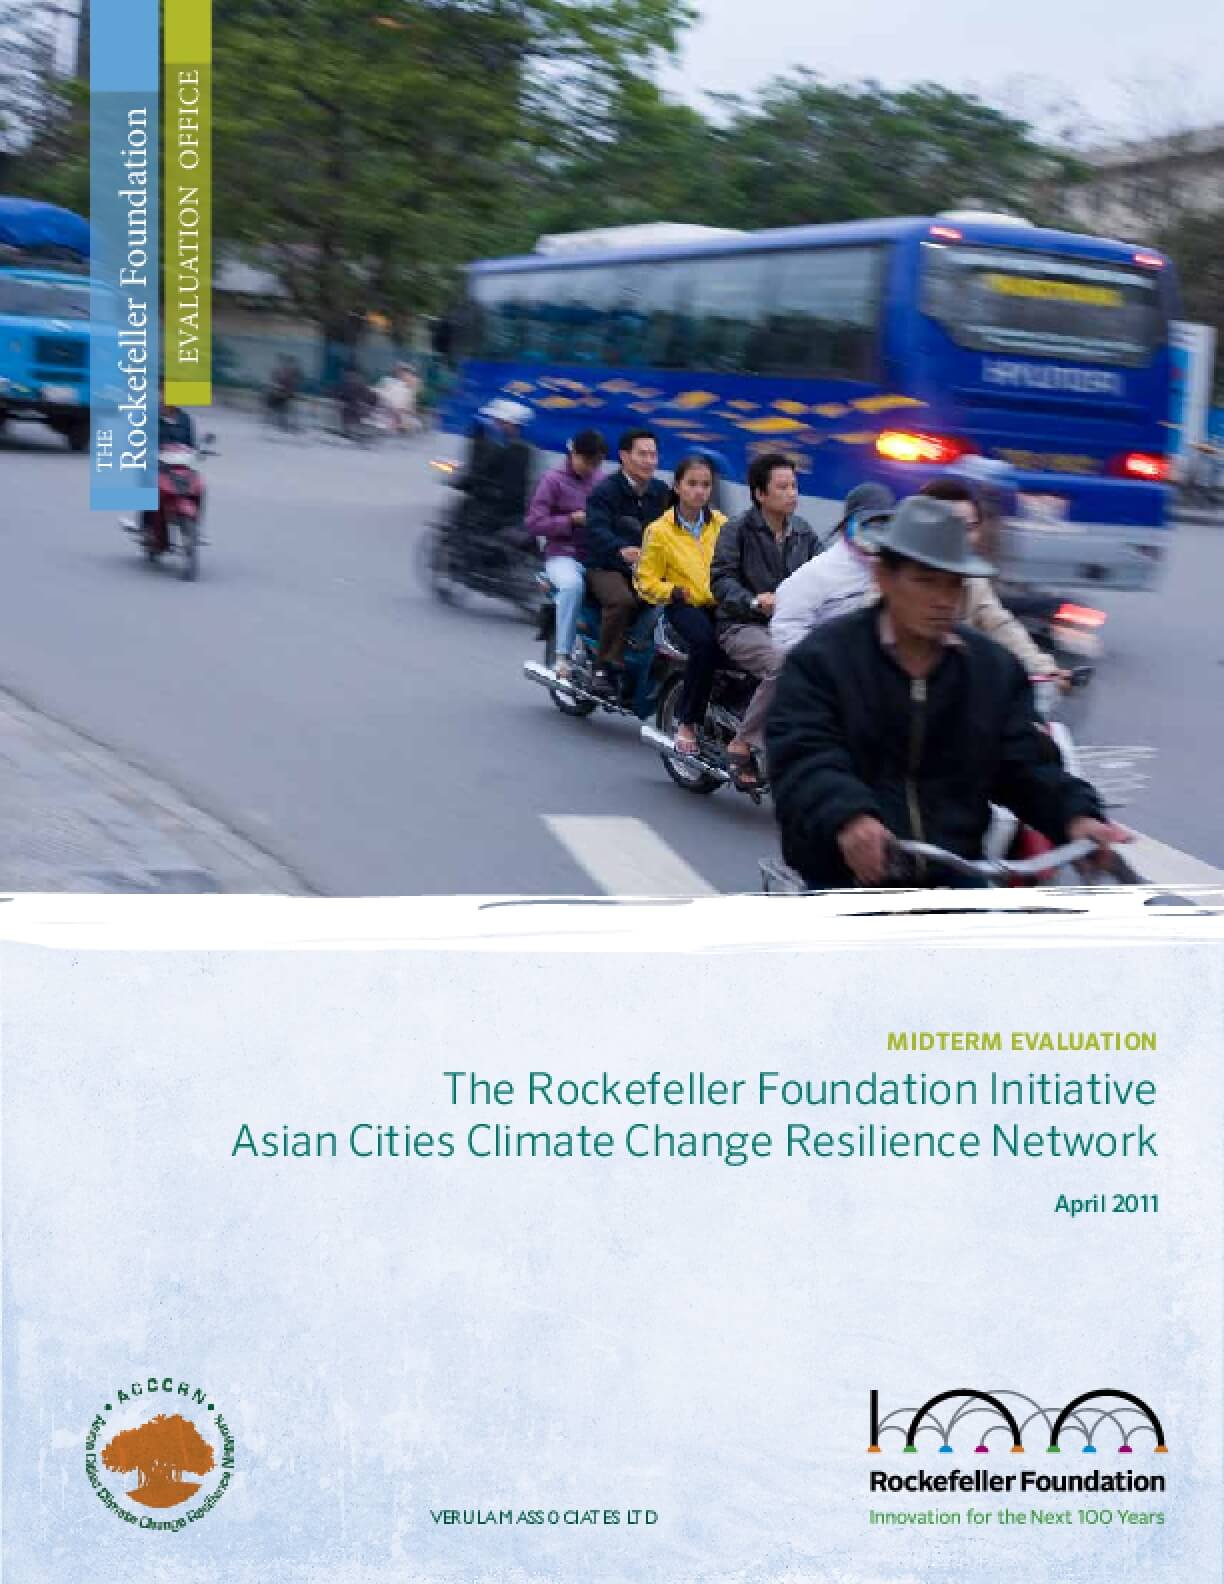 The Rockefeller Foundation Initiative Asian Cities Climate Change Resilience Network: Midterm Evaluation